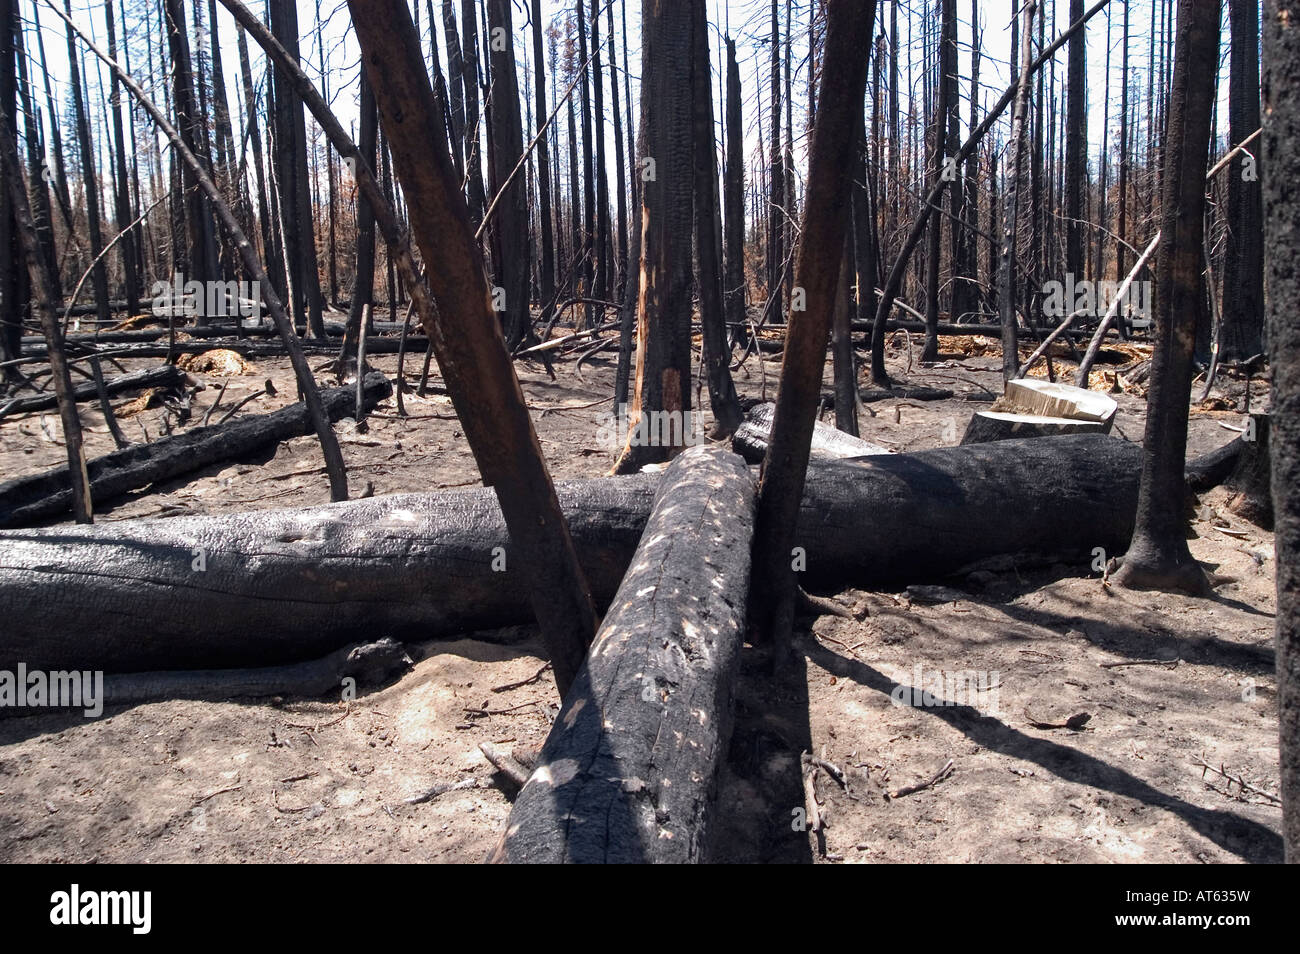 Burned trees will eventually recover from the 2003 East Fire that occurred in Yellowstone National Park, WY. - Stock Image